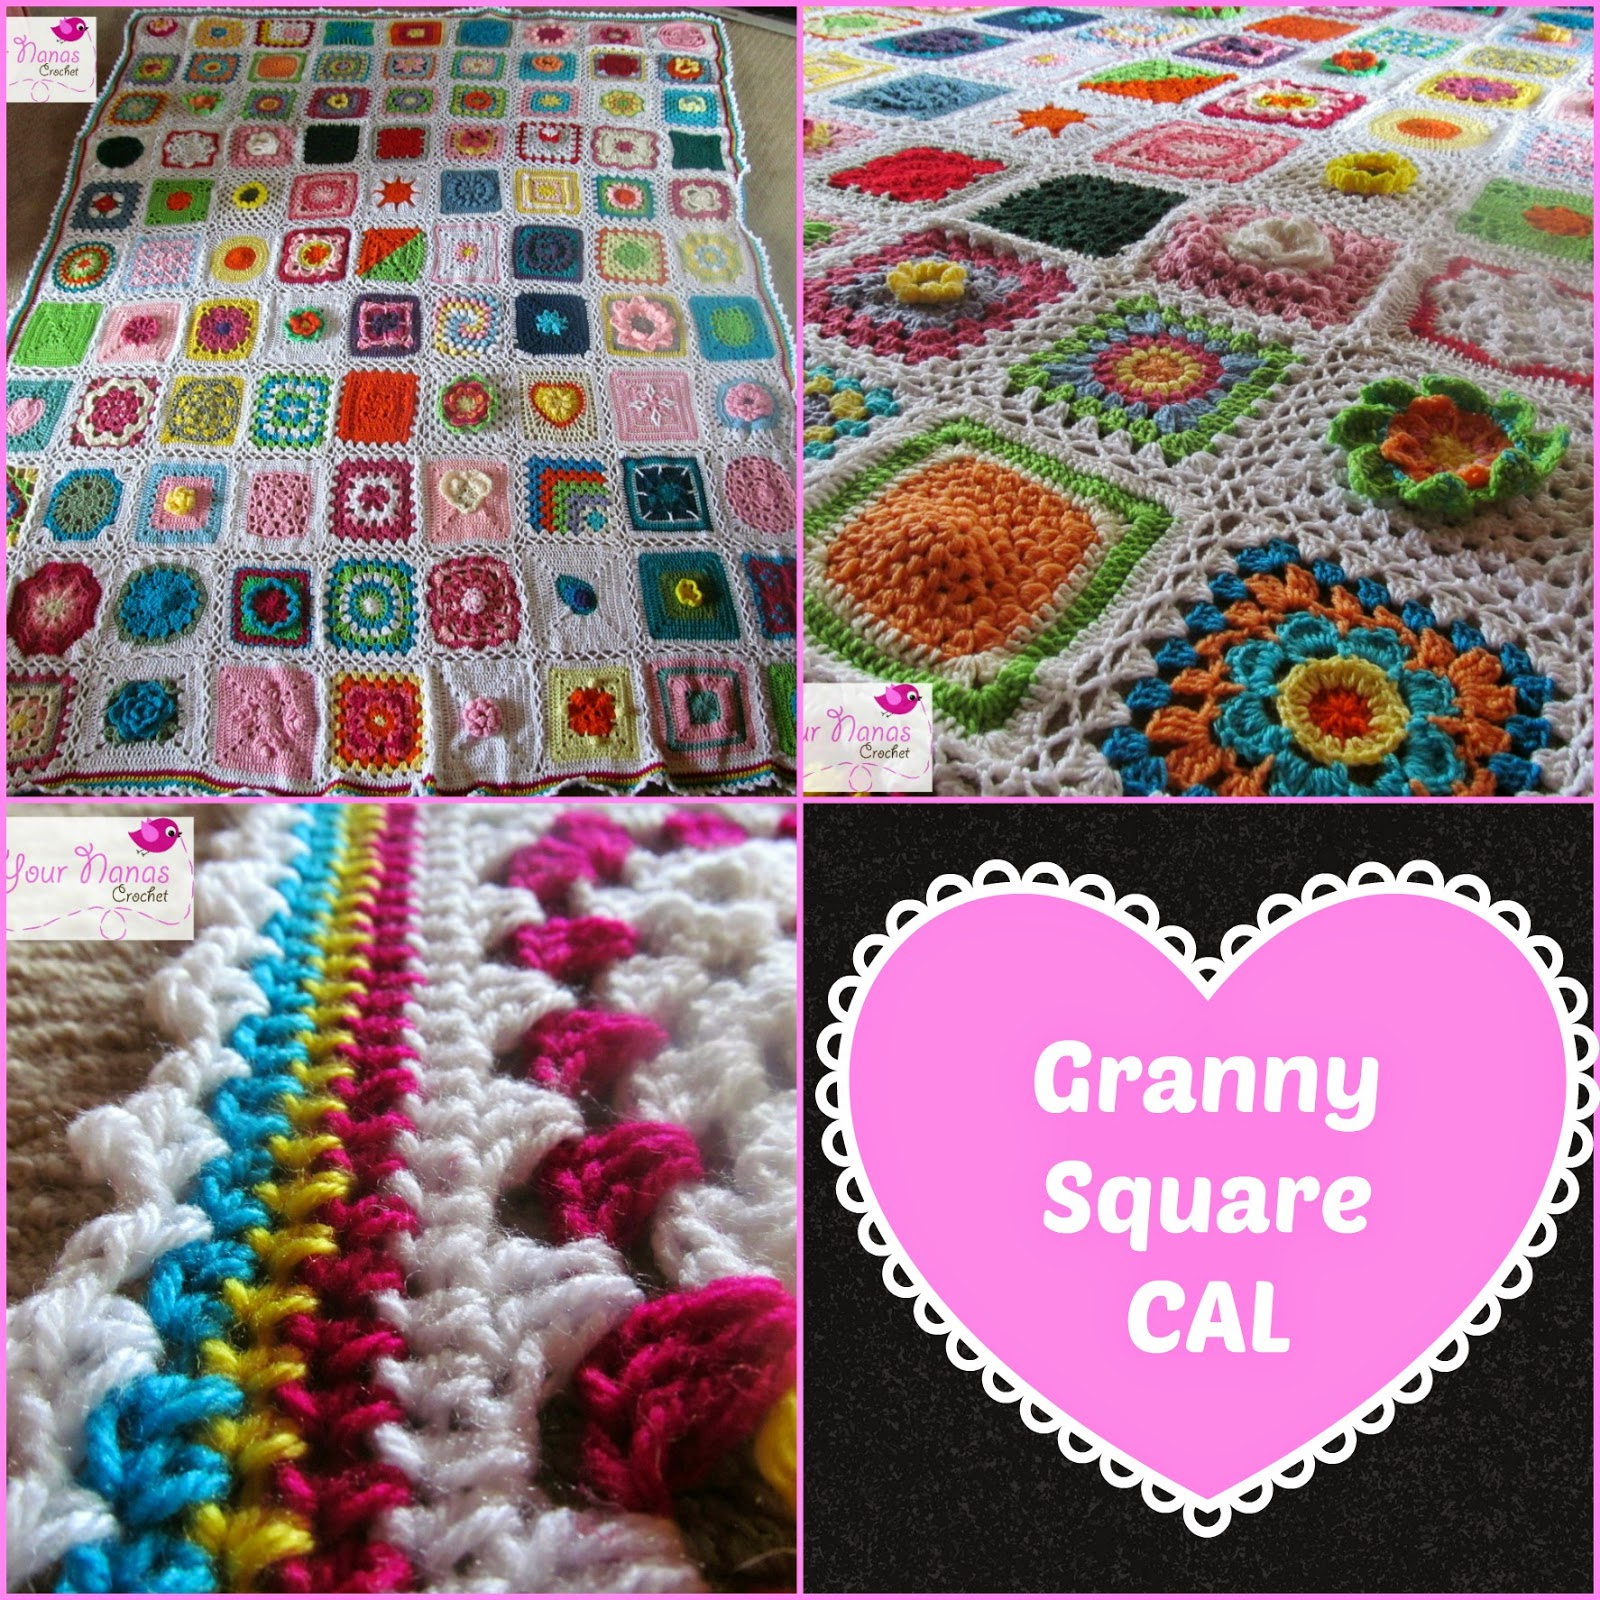 Knot Your Nana's Crochet: Granny Square Crochet Along